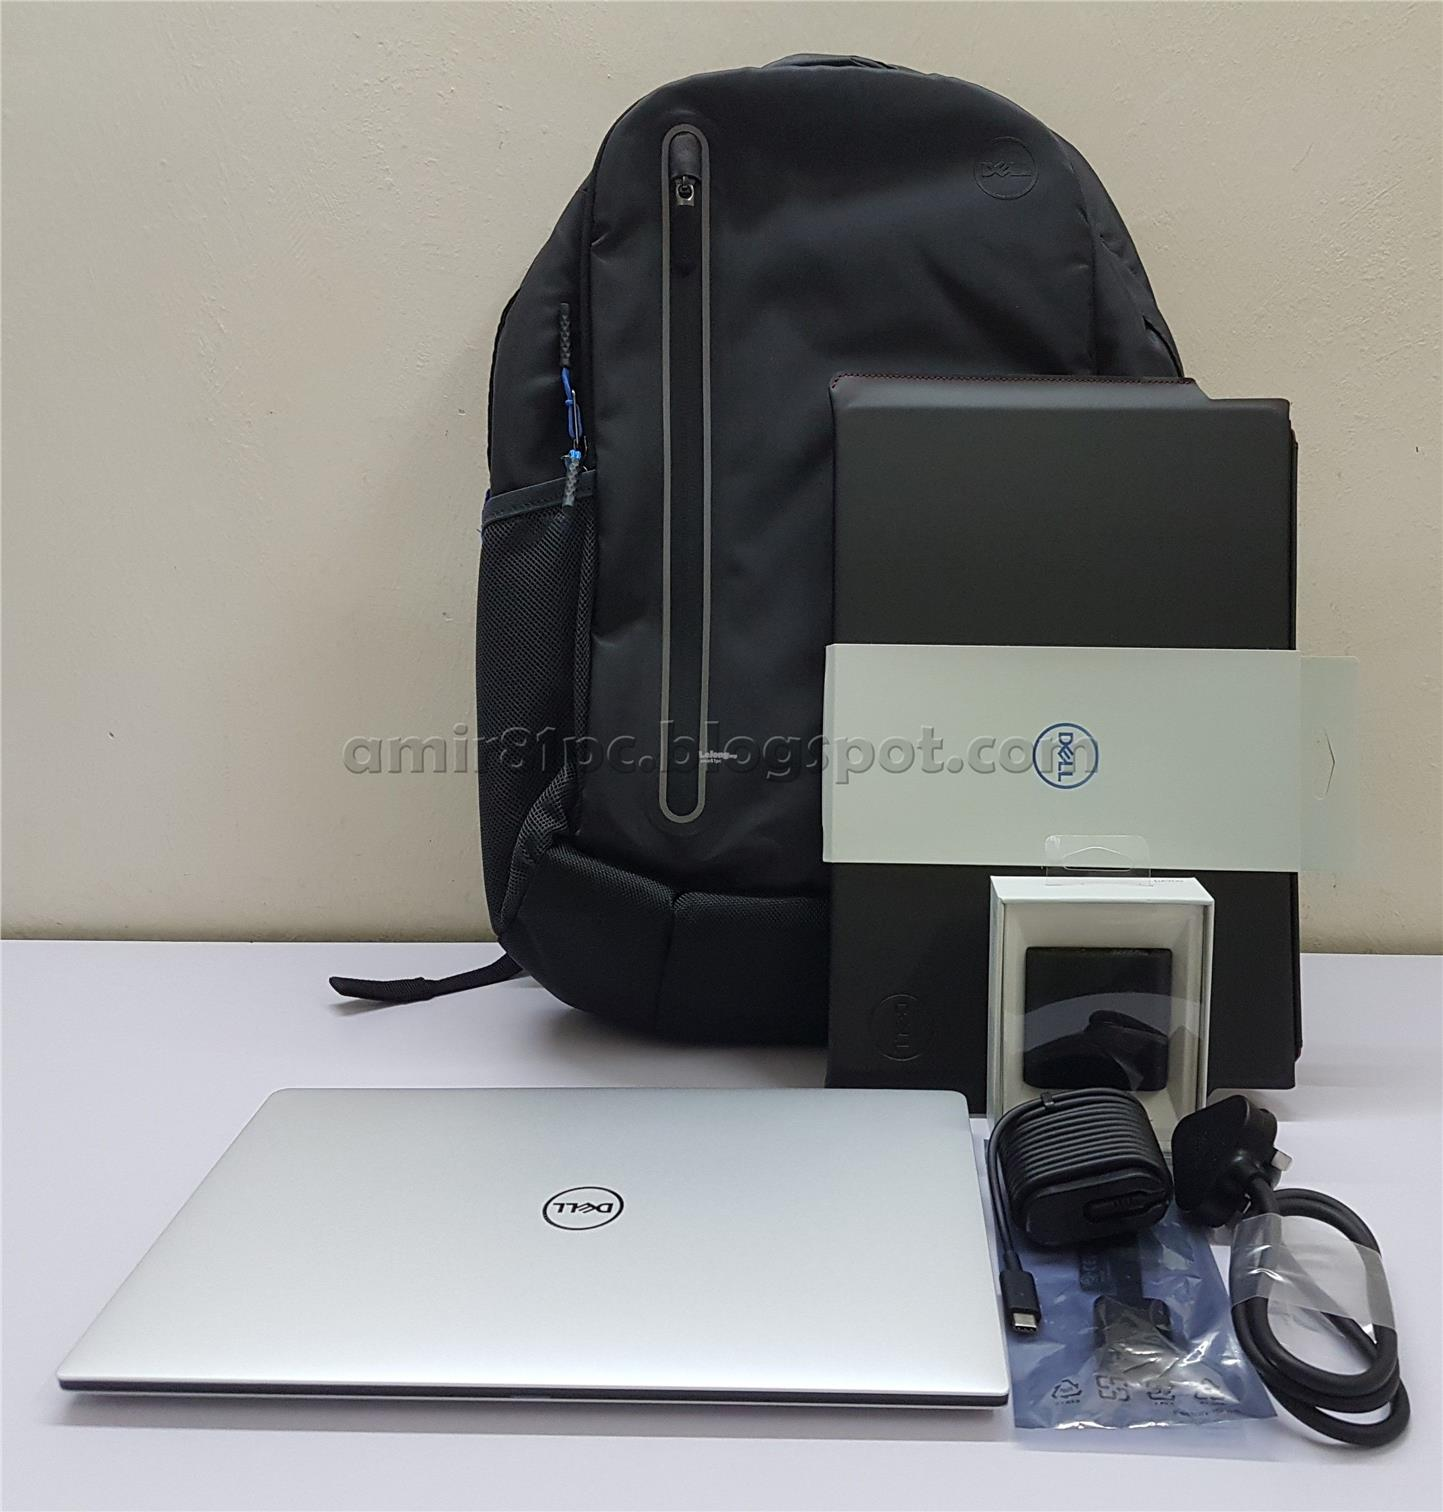 NEW OPEN BOX Dell XPS 13 /8th Gen Core i7 Max 4.0GHz/13.3in Full HD